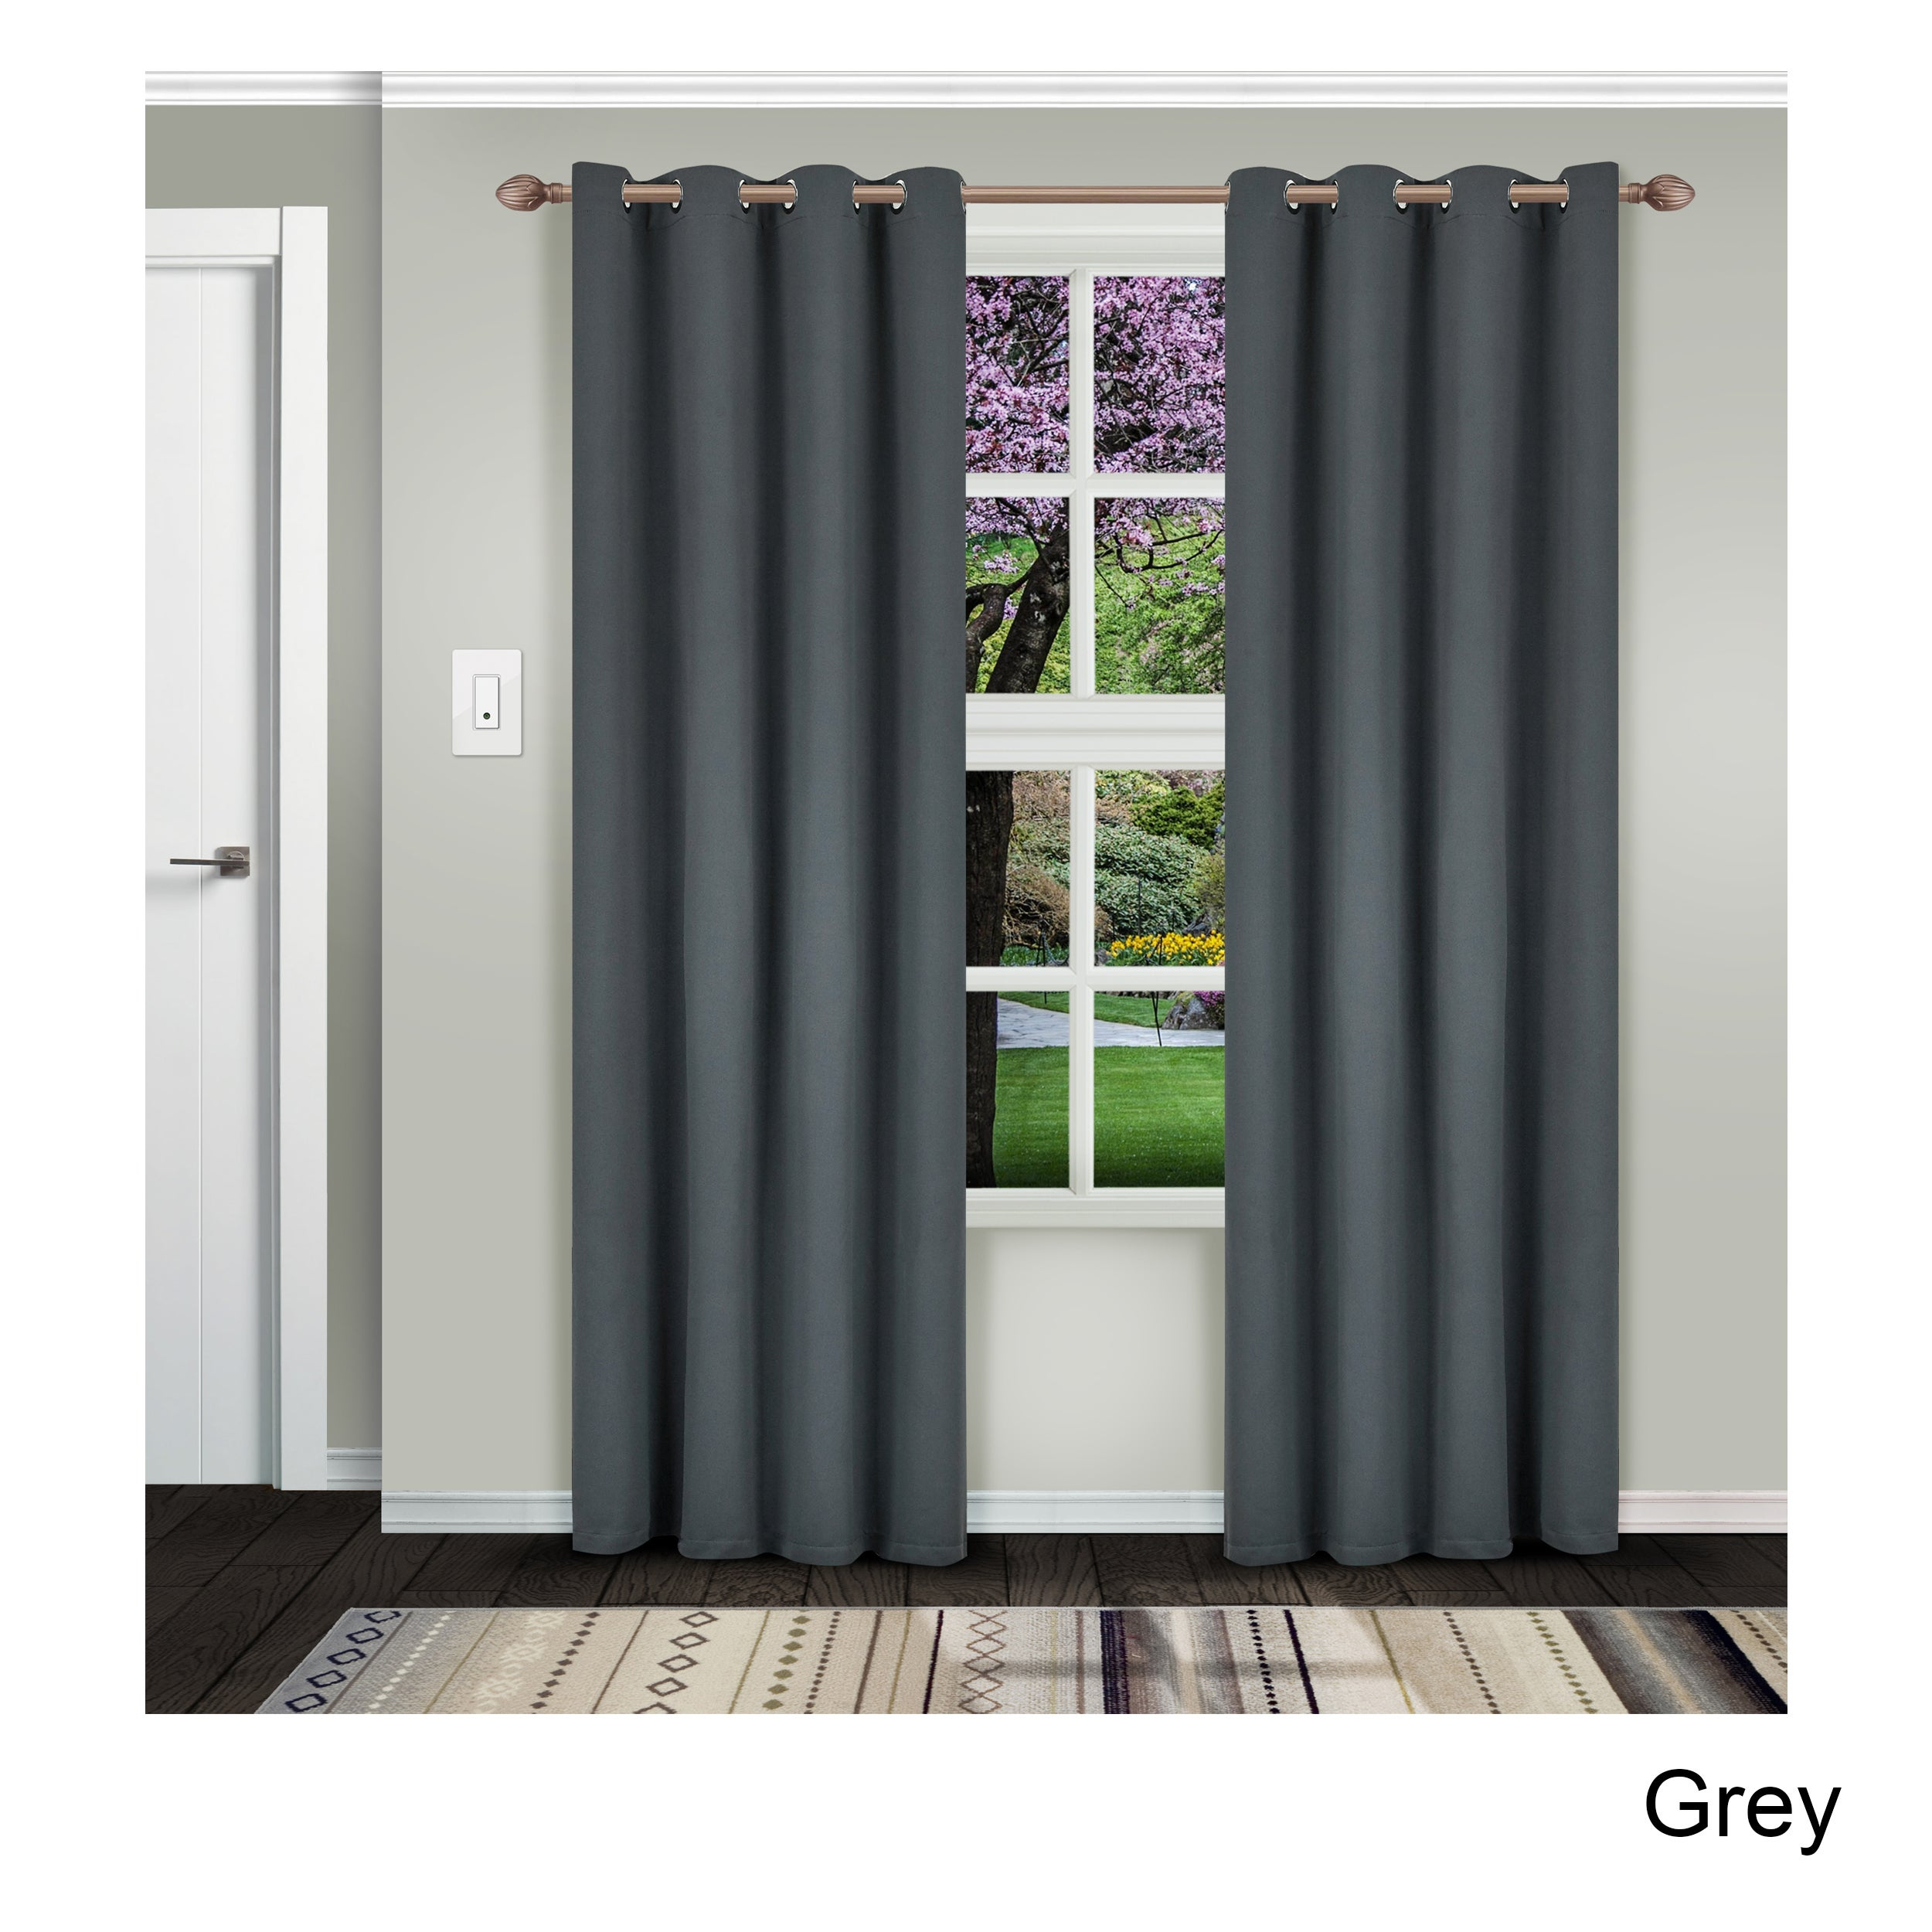 Superior Solid Insulated Thermal Blackout Grommet Curtain Panel Pair Pertaining To Solid Thermal Insulated Blackout Curtain Panel Pairs (View 18 of 30)